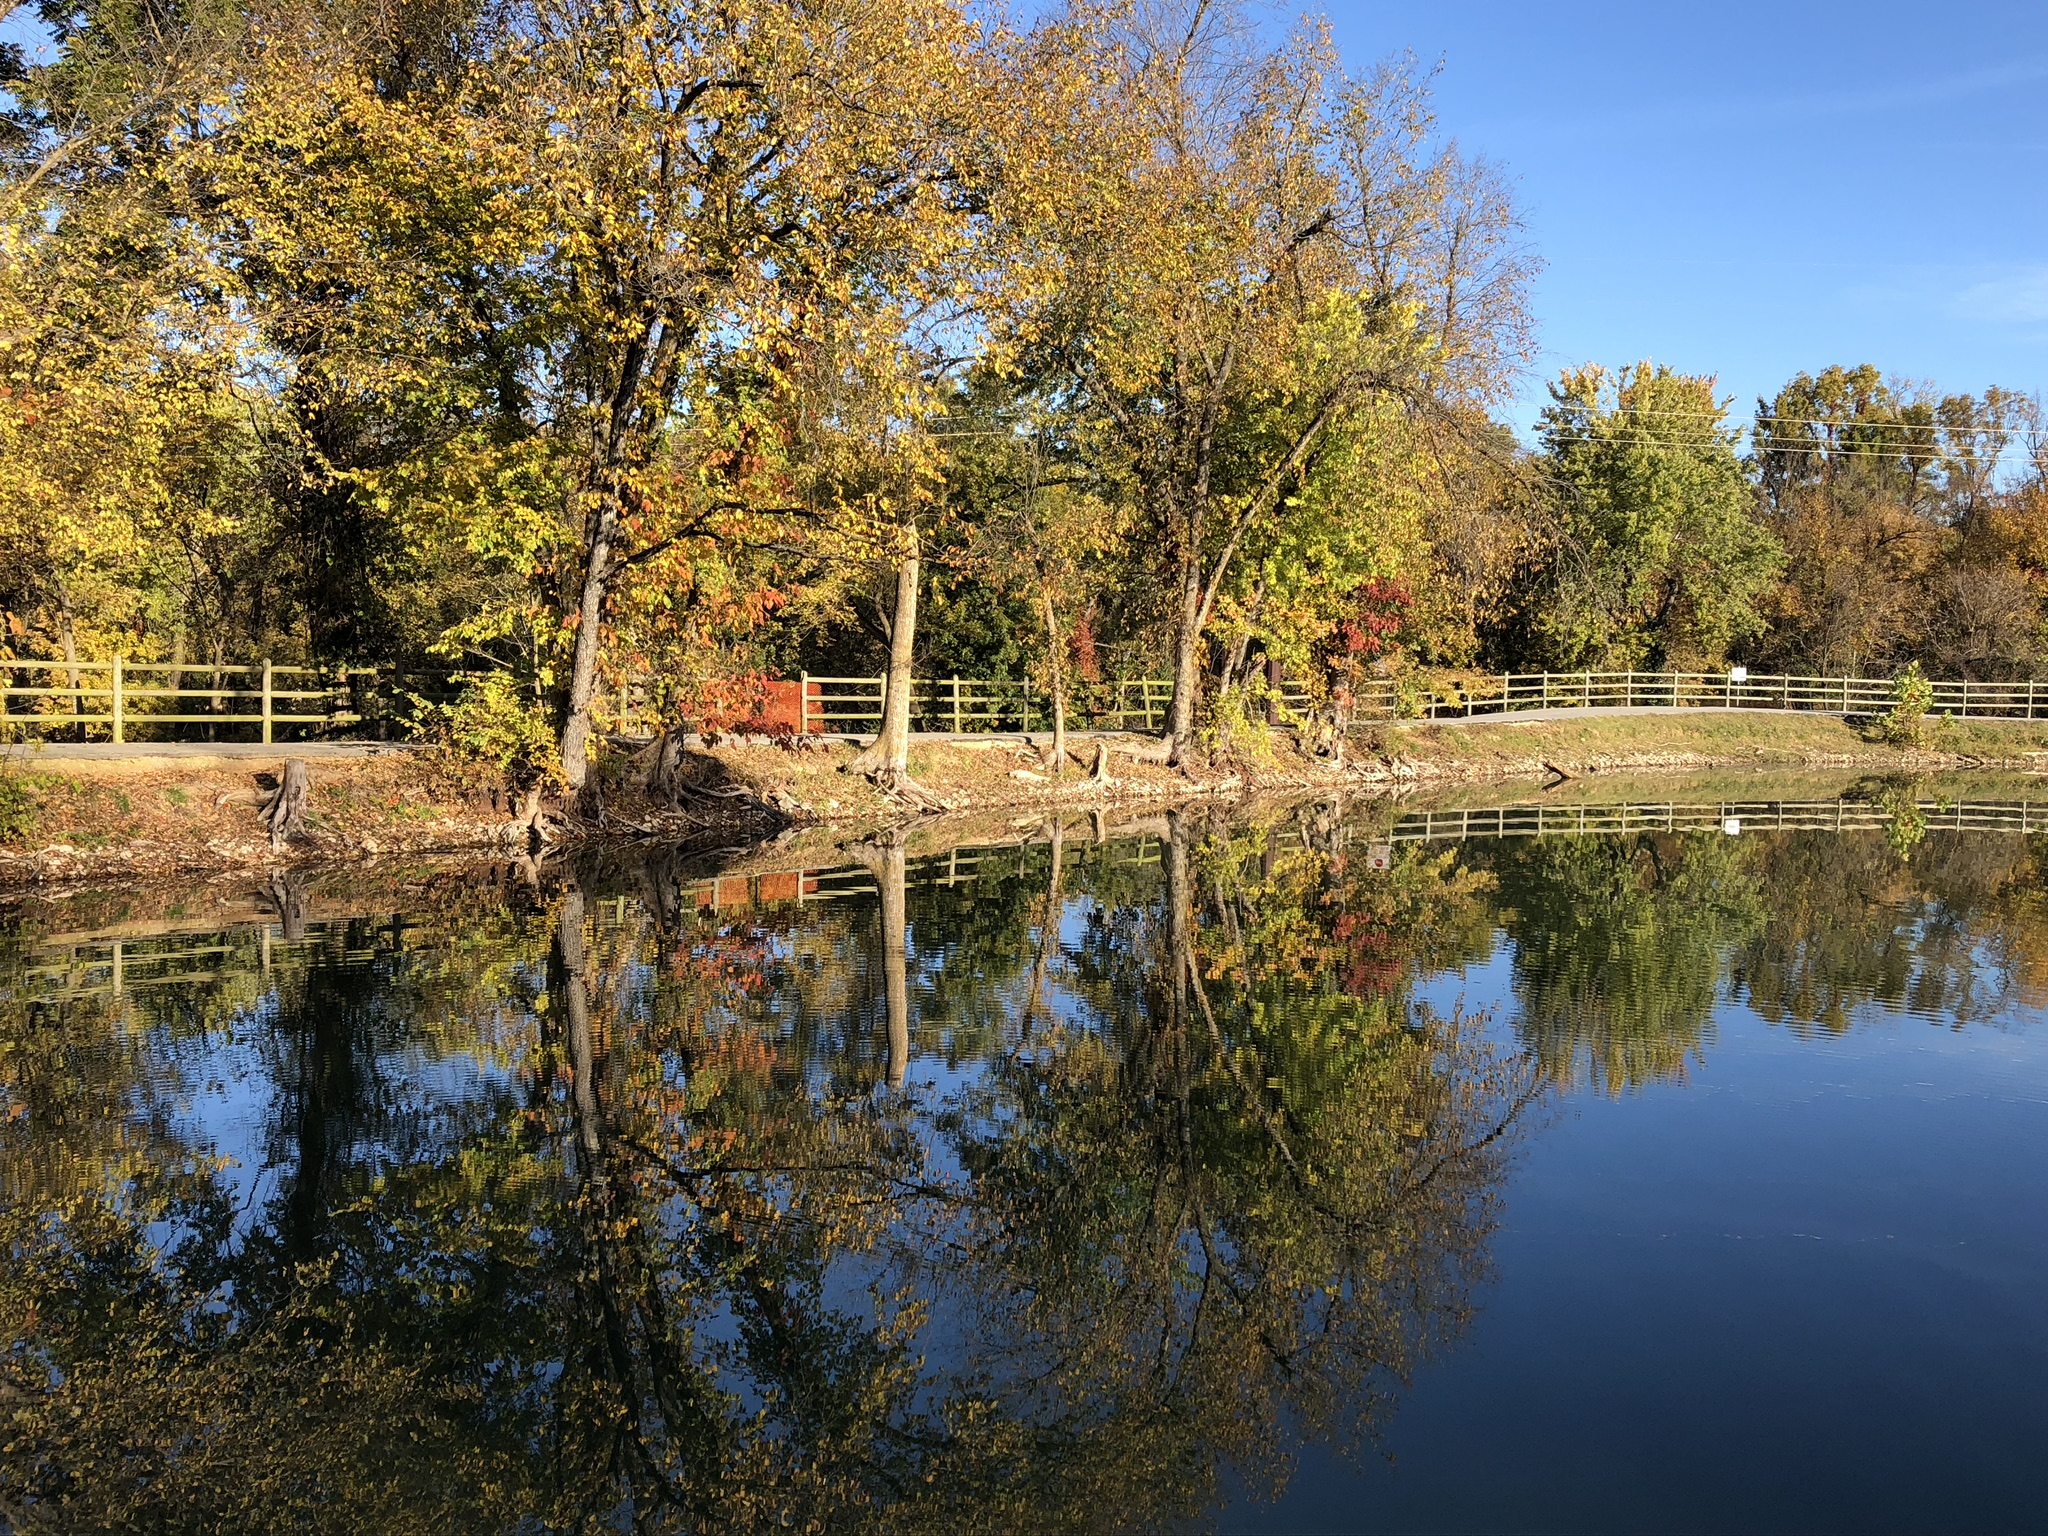 Lake Springdale, one of the scenic views on the Razorback Regional Greenway trail.  Photo credit:  Denise Grindstaff